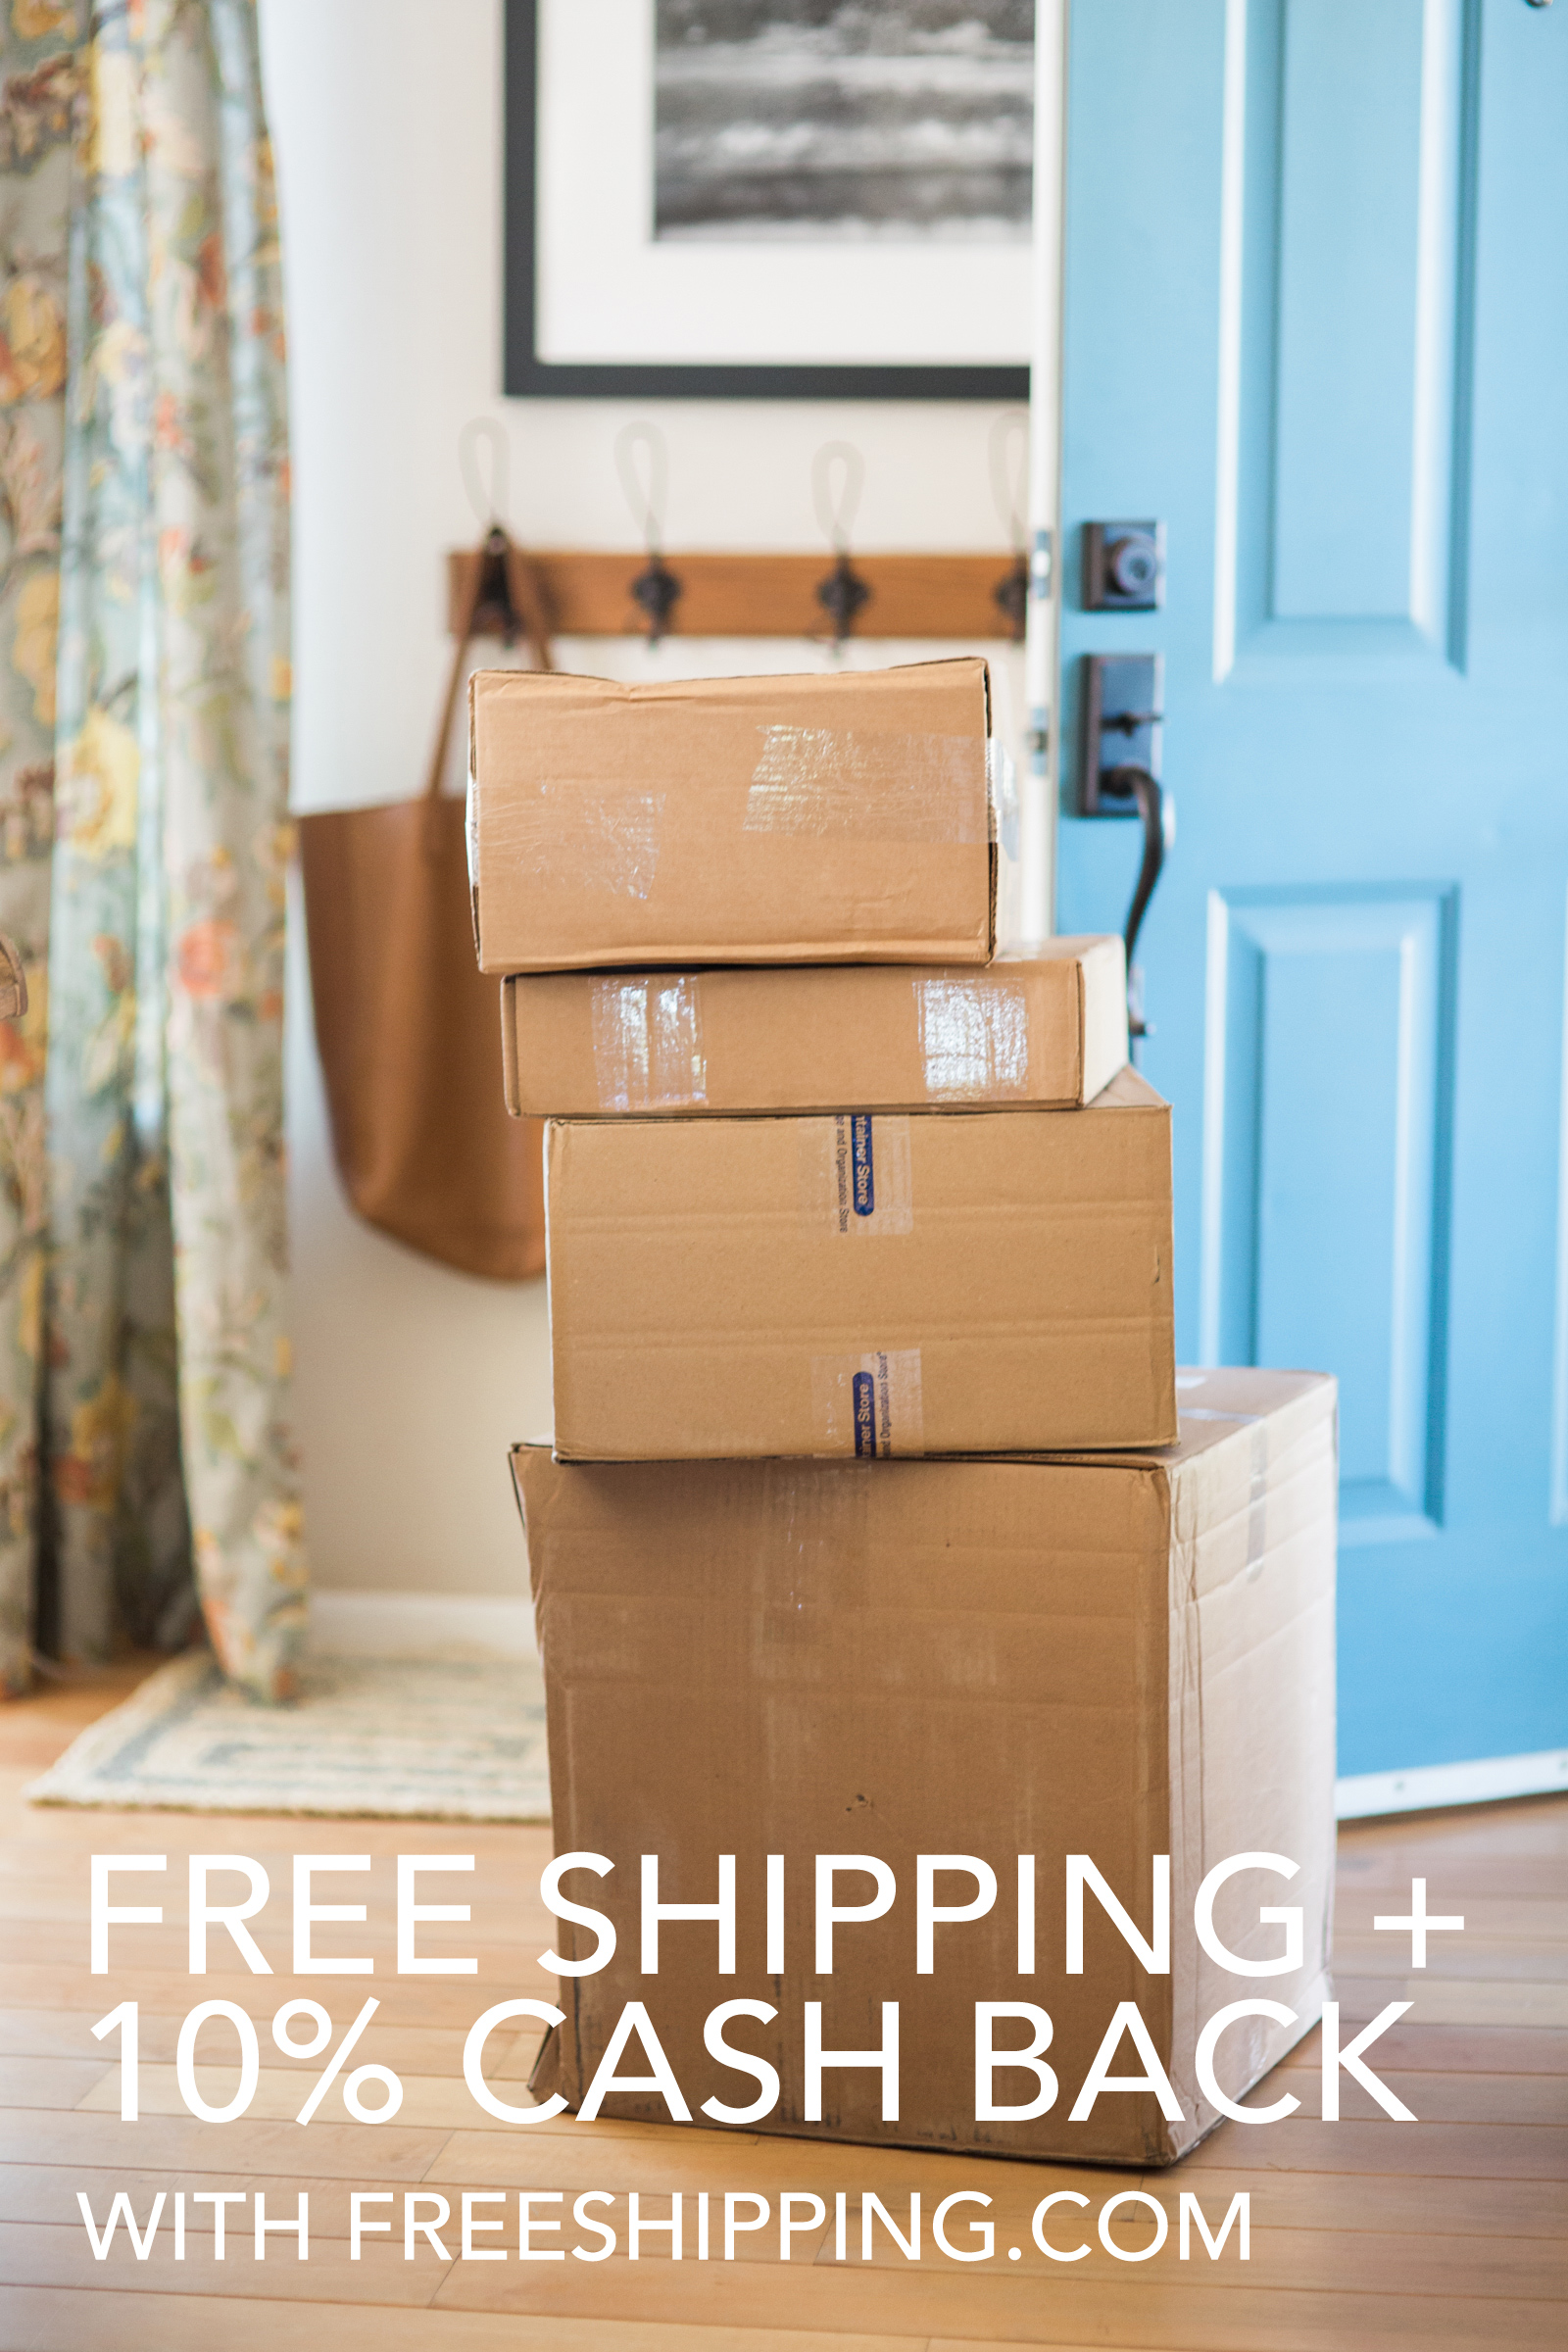 freeshipping.com review online shopping